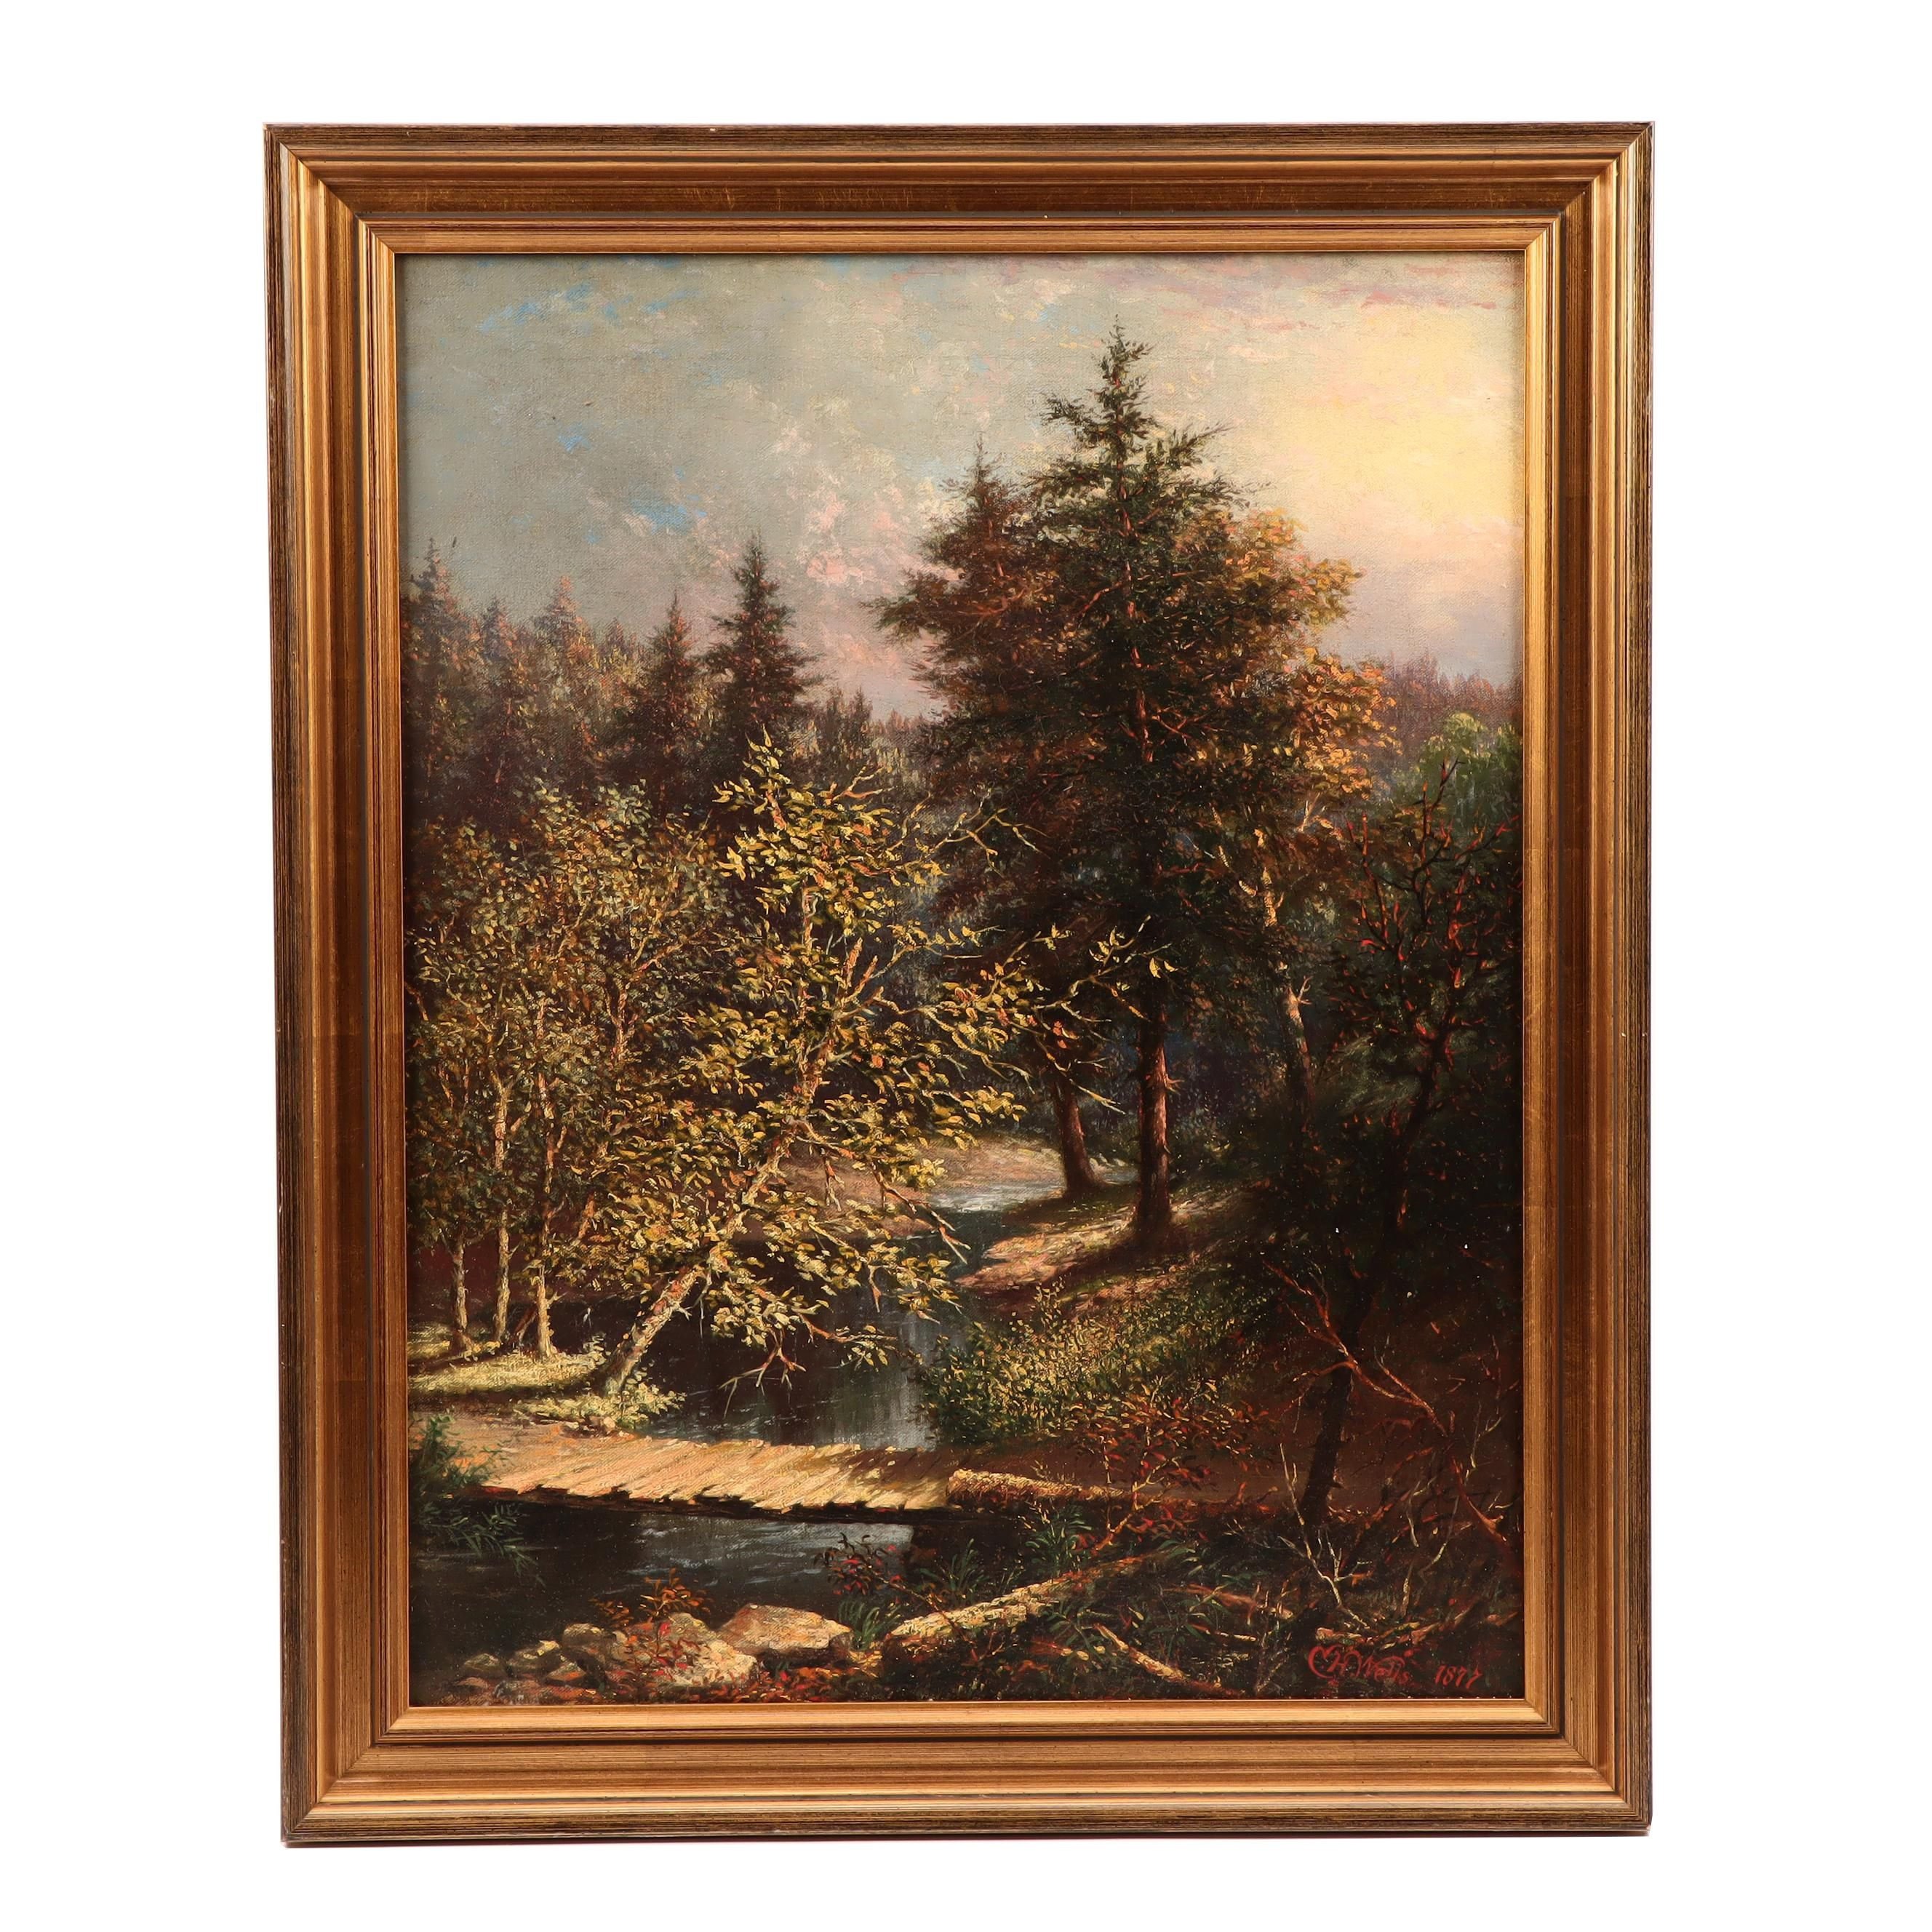 C.H. Wells Barbizon Style Landscape Oil Painting